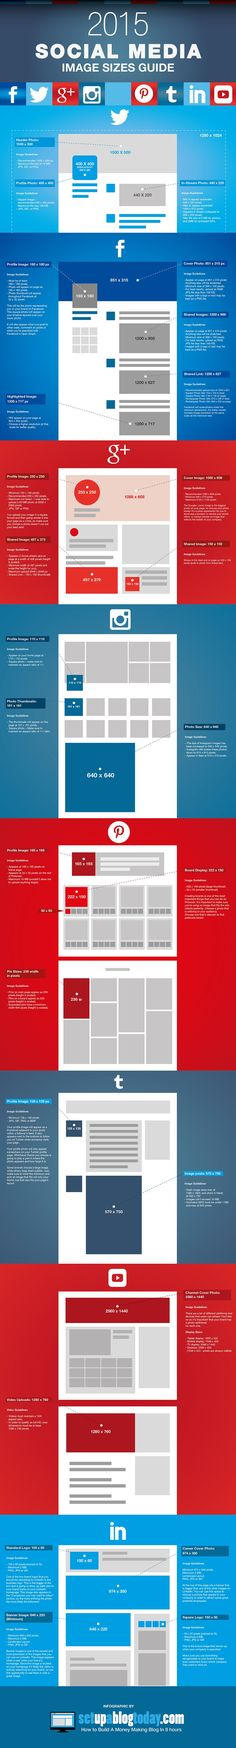 2015 Guide to Social Media Image Sizes #infographic